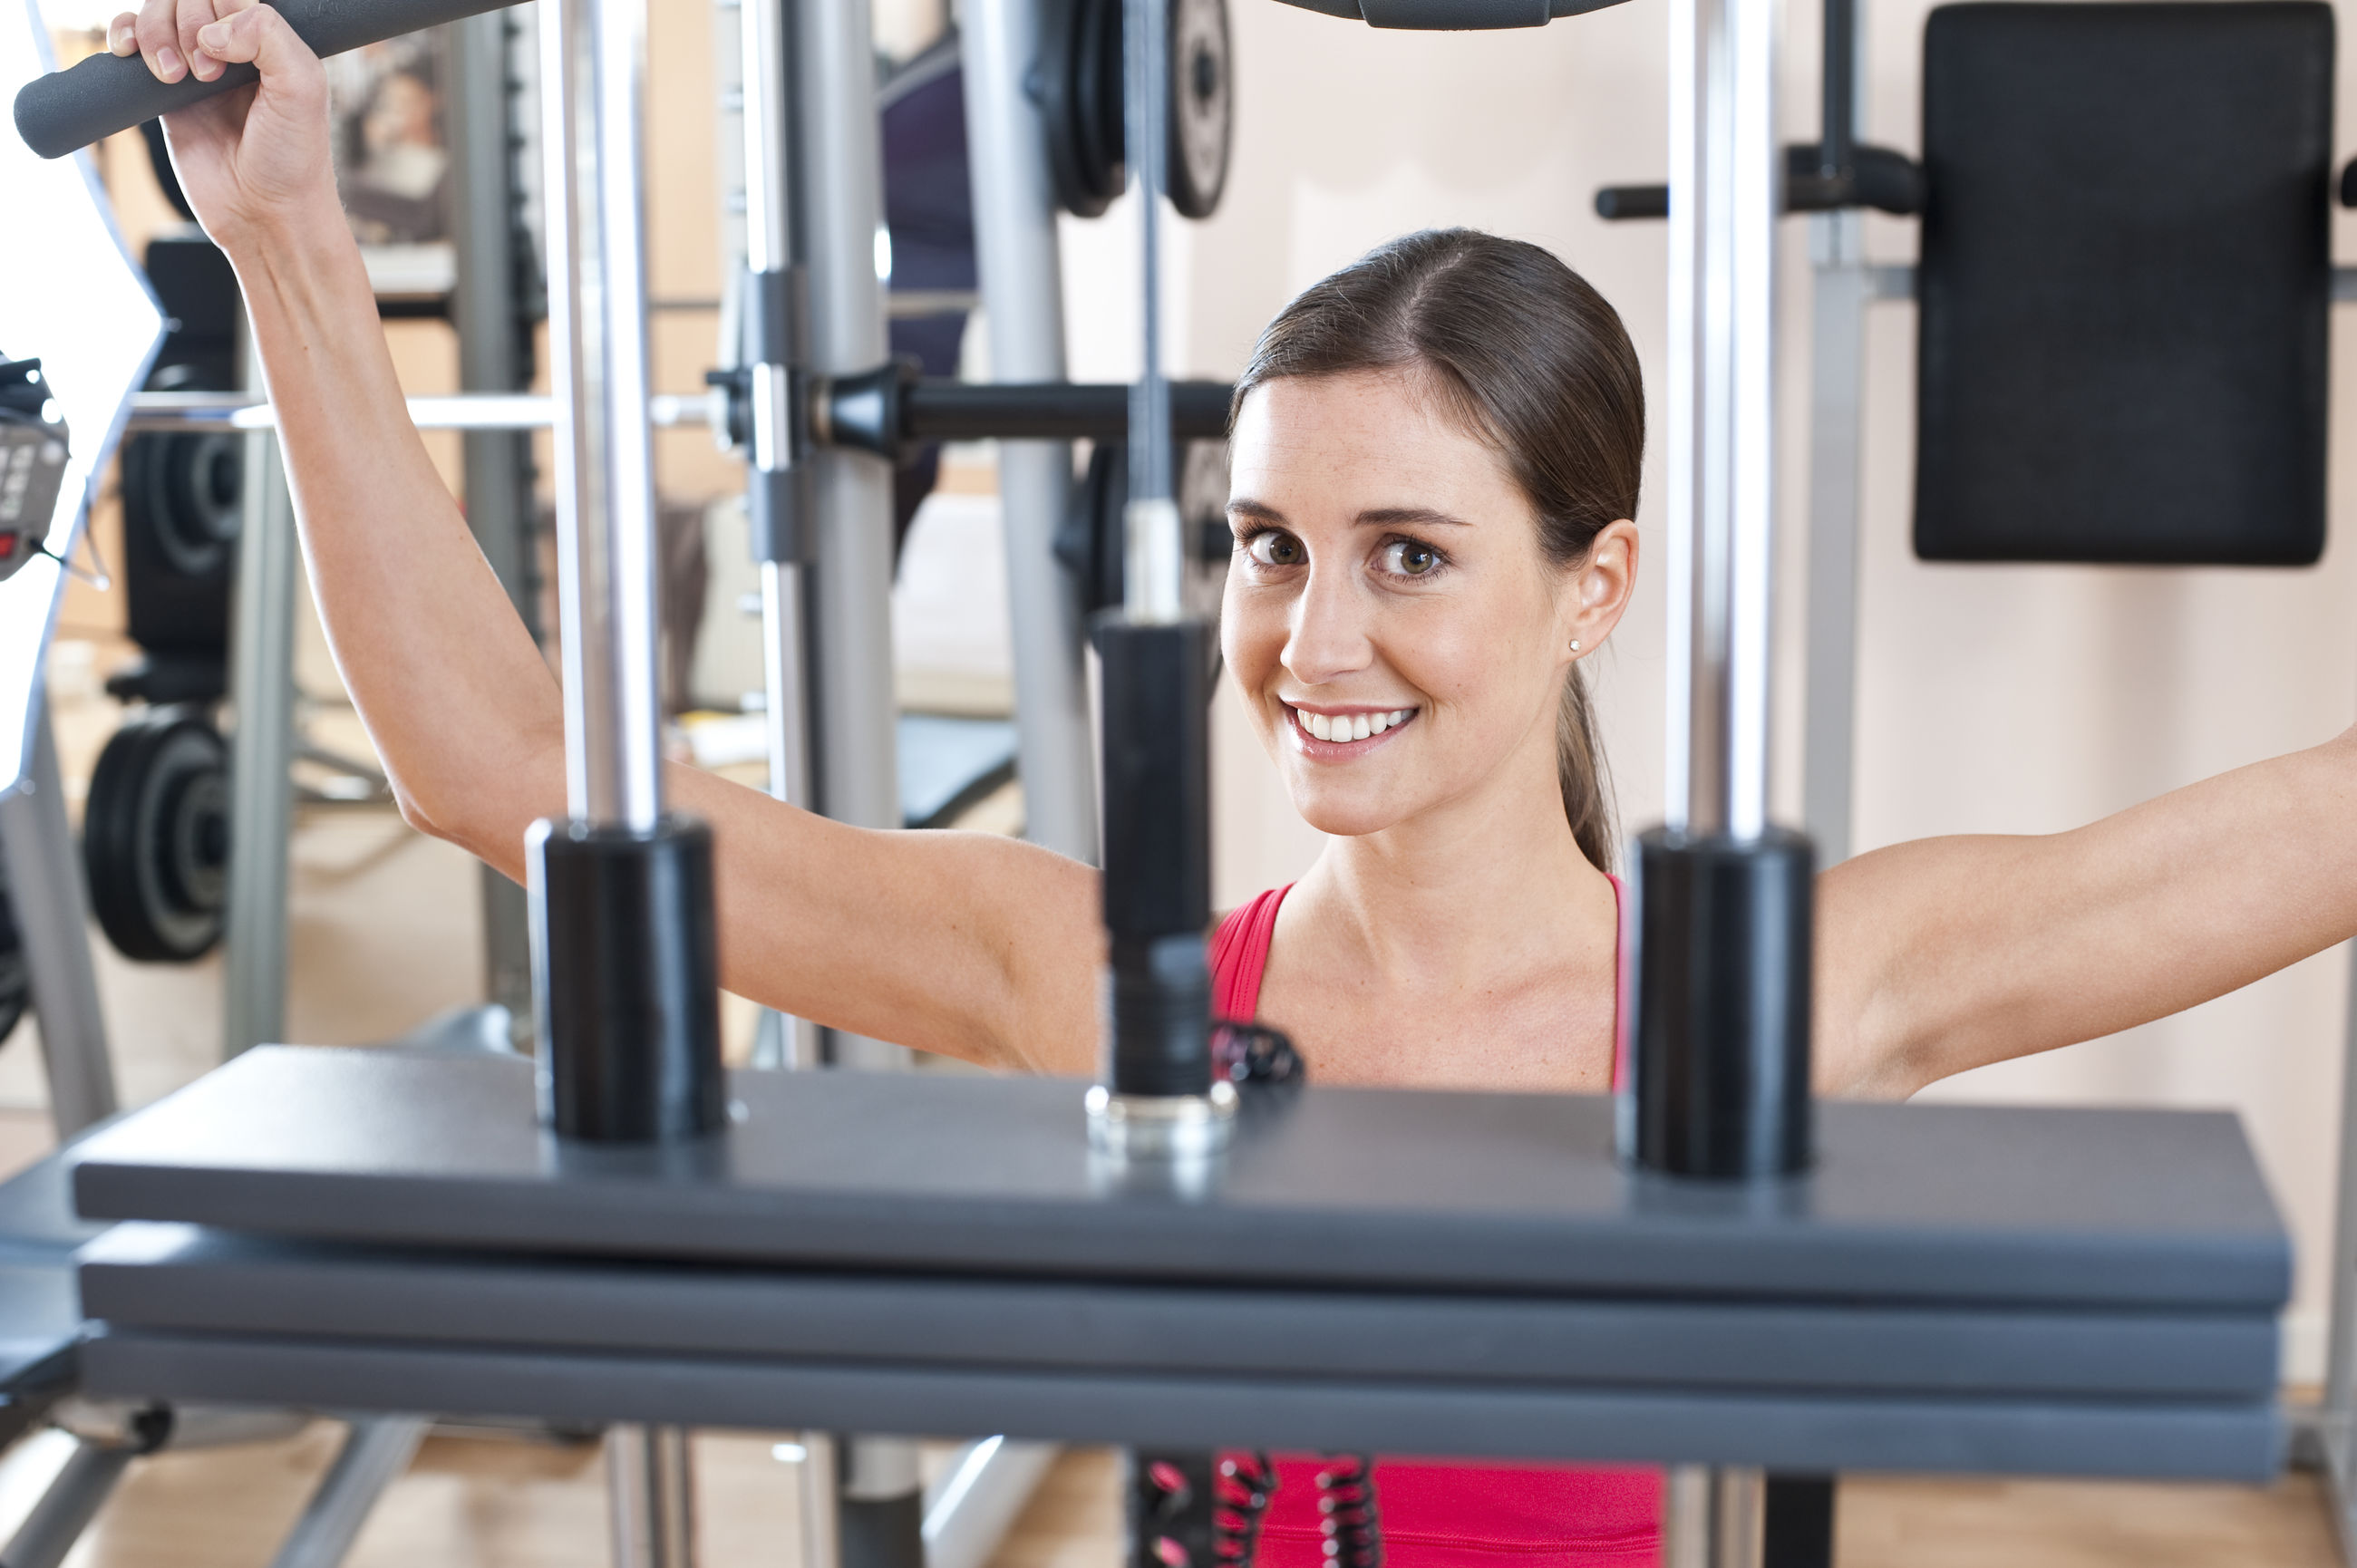 Close-up of smiling woman exercising at gym